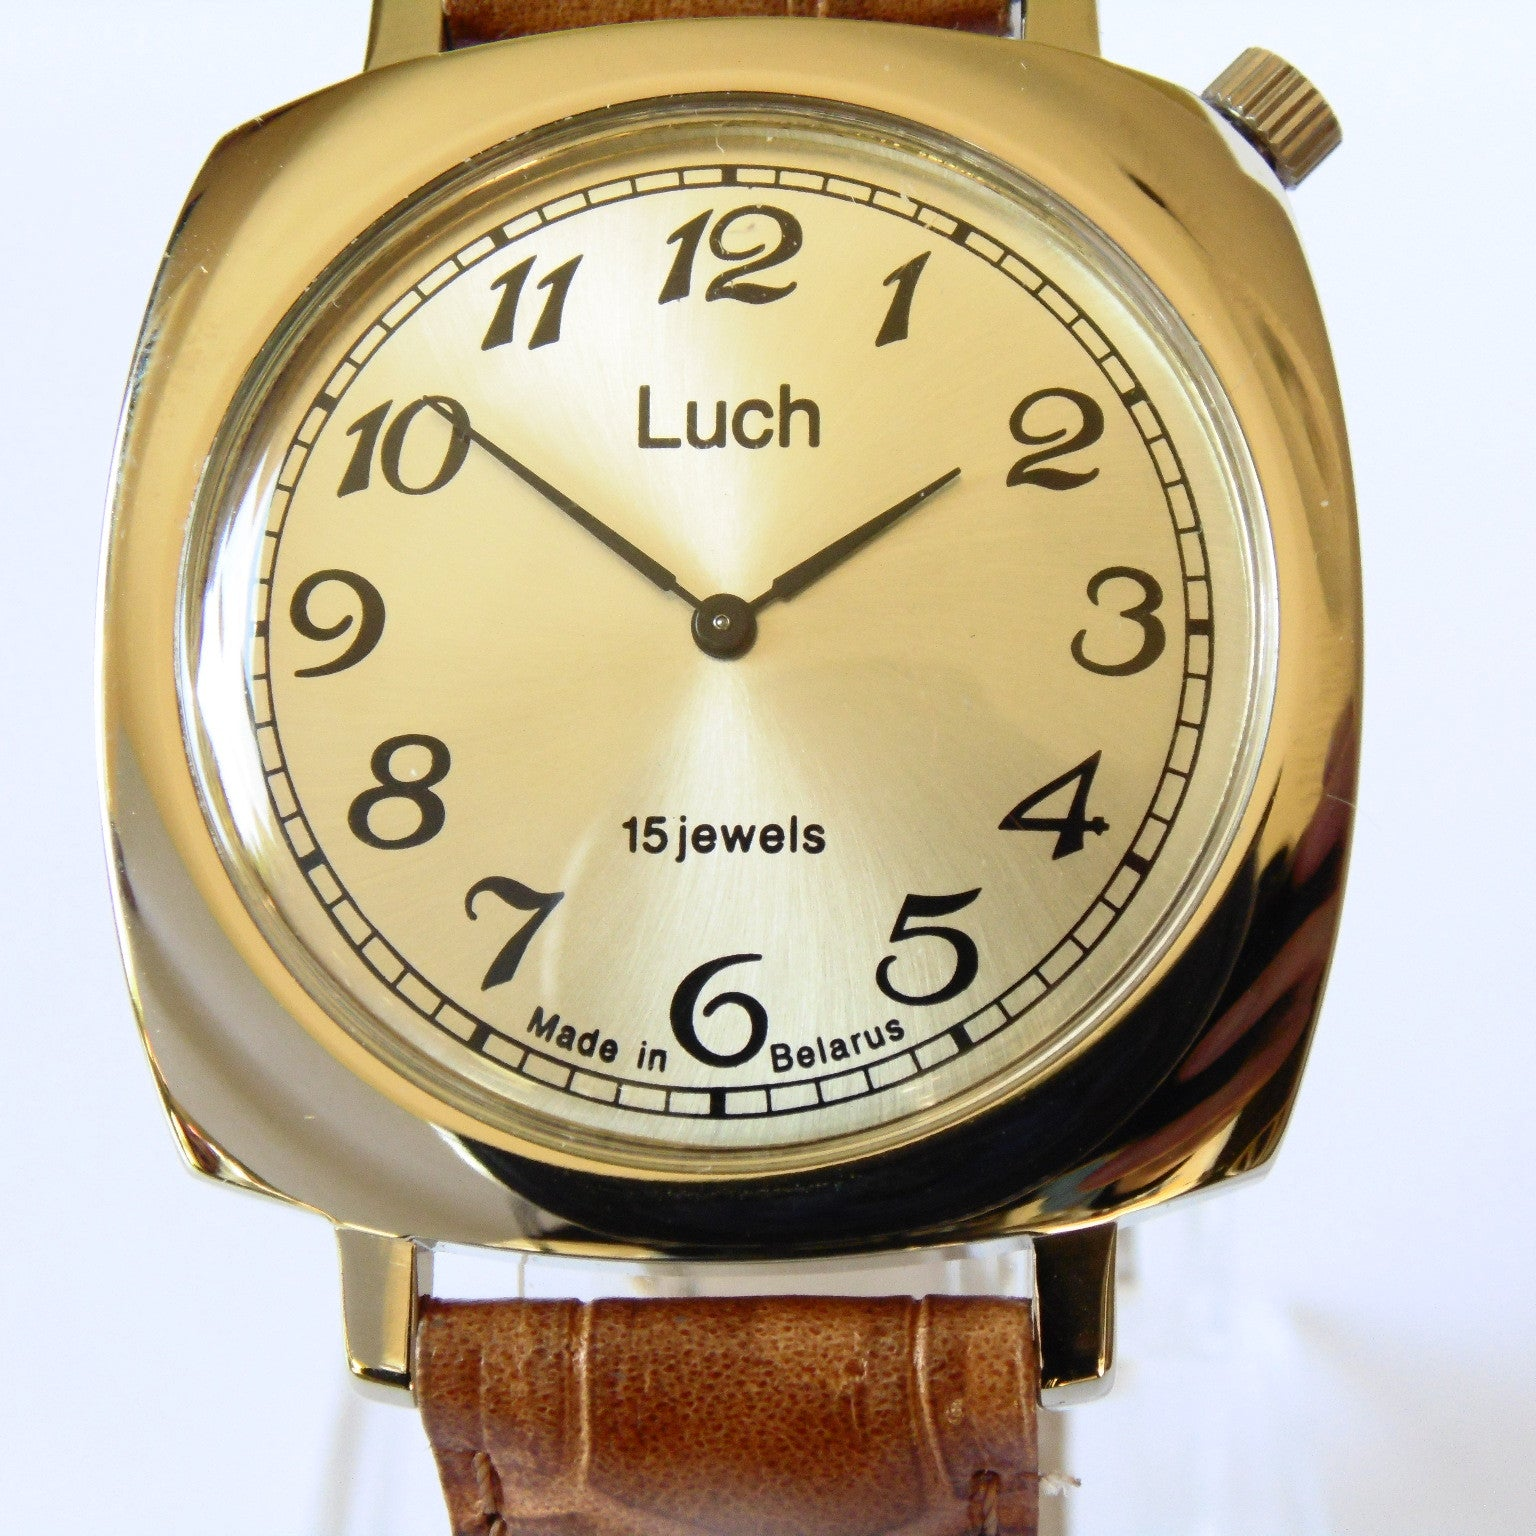 Luch Handwinding Watch - 337587249 - Watchfinder General - UK suppliers of Russian Vostok Parnis Watches MWC G10  - 4